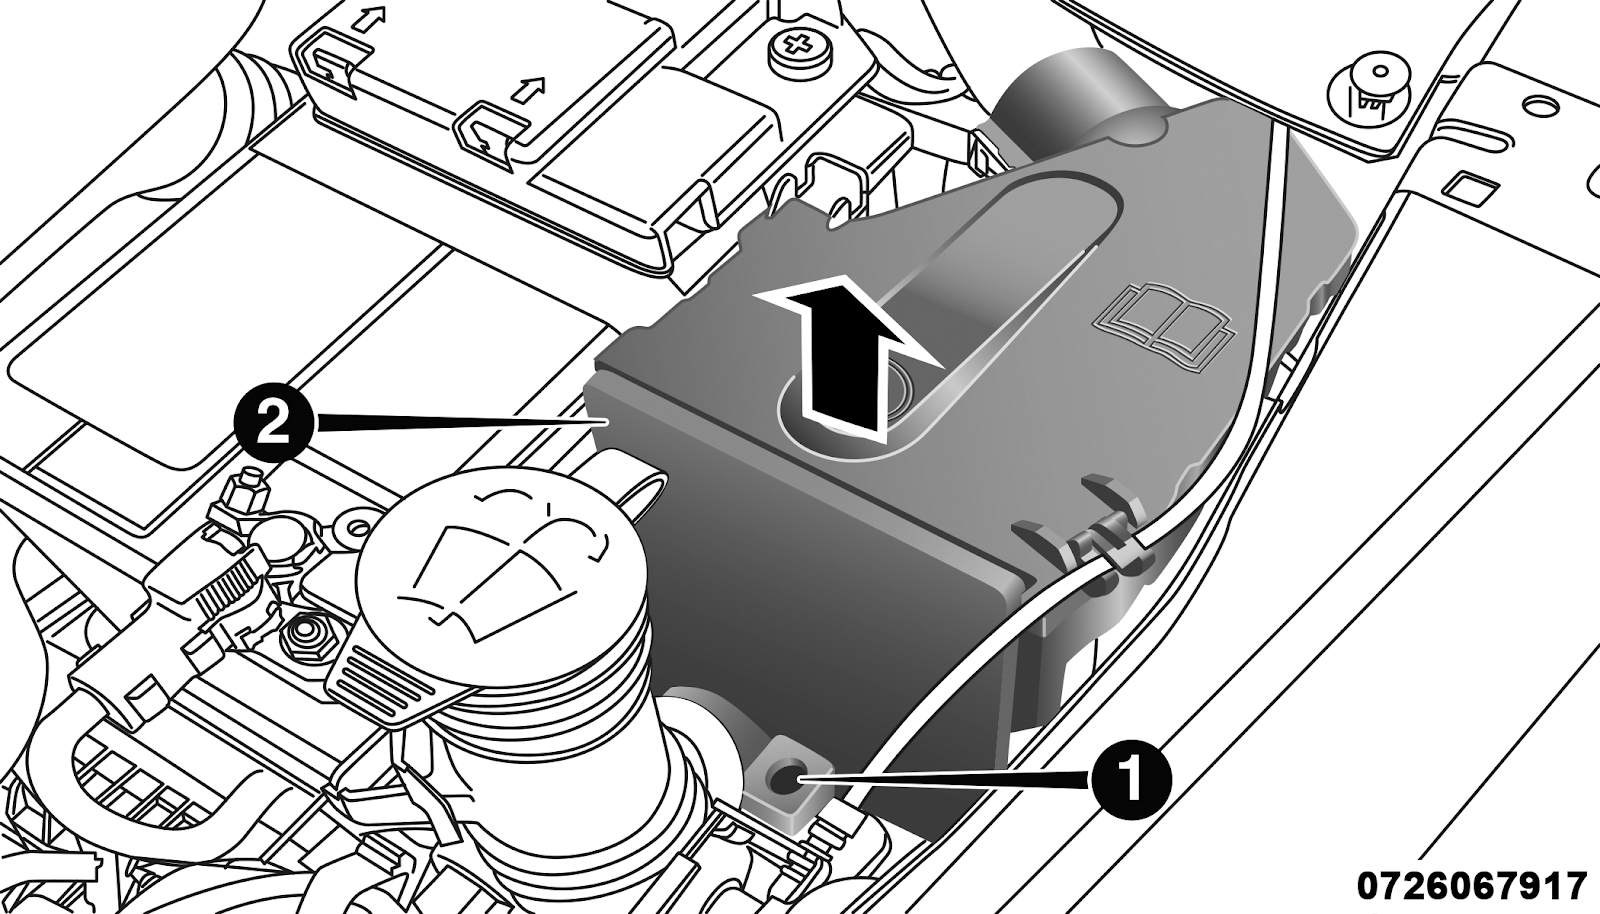 Usb Port Just Died Fiat 500 Interior Fuse Box Panel And Cover Location